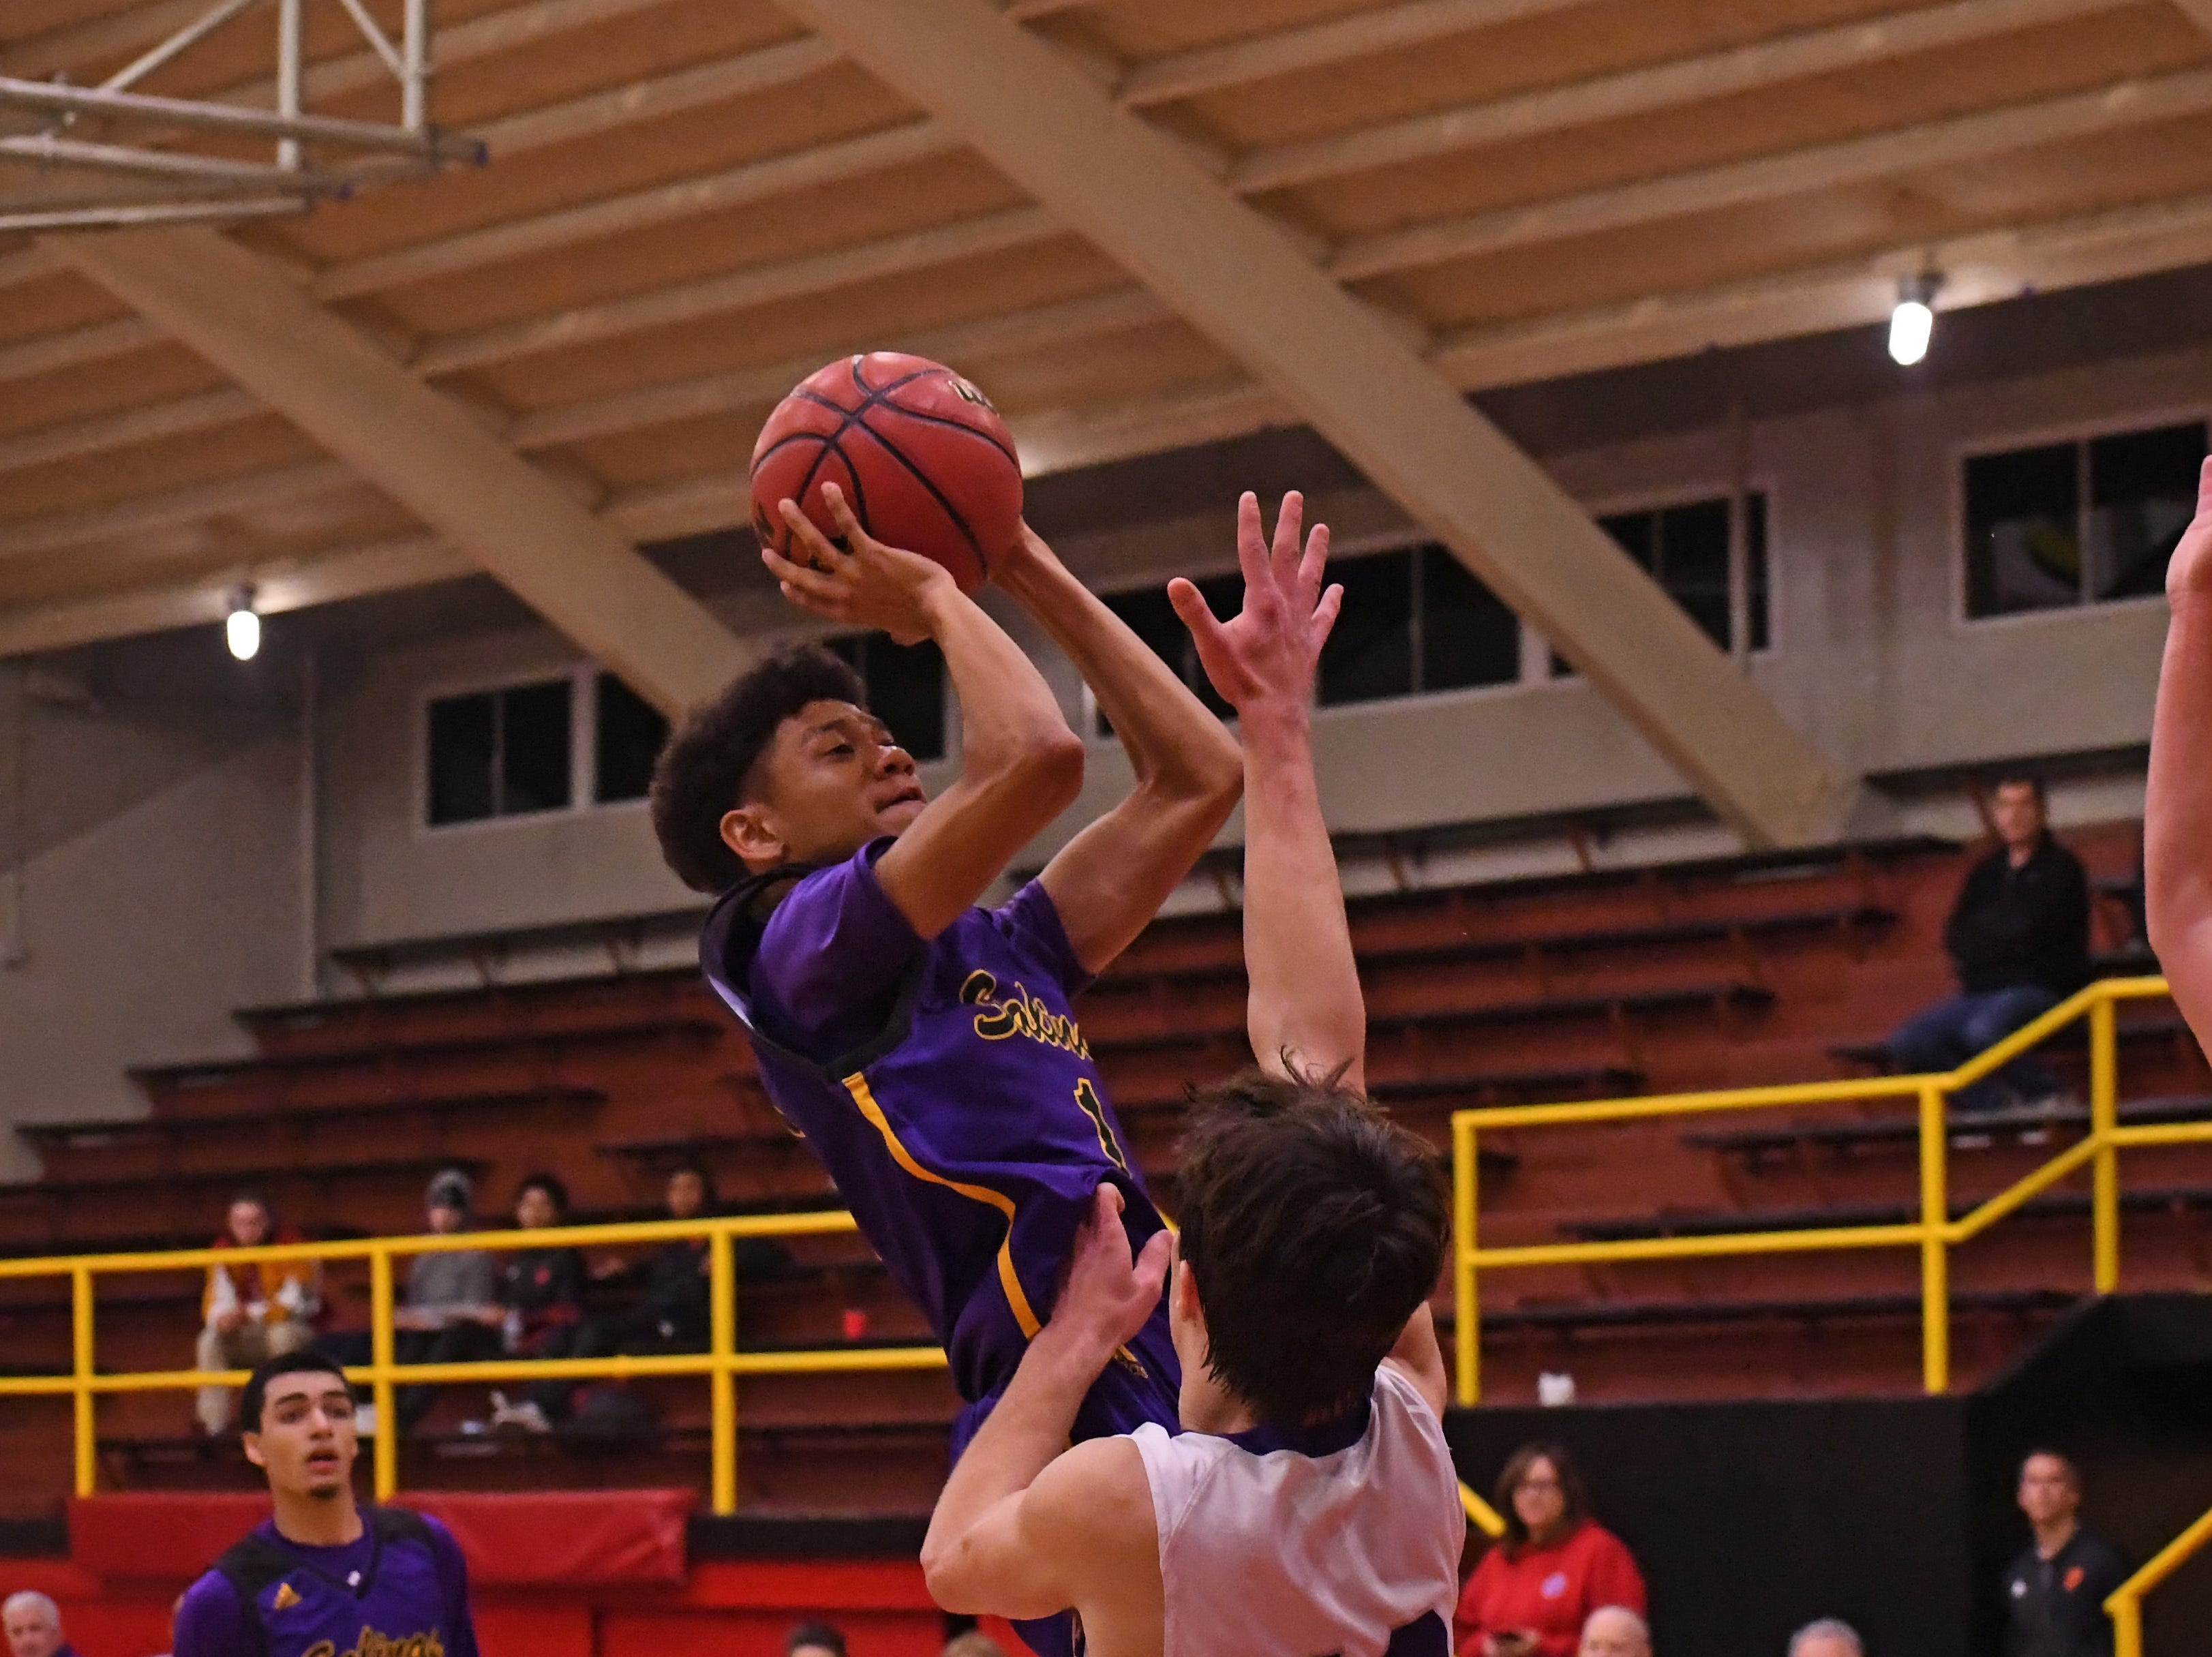 Salinas guard JoJo Paris (1) rises up for  a shot in the paint.